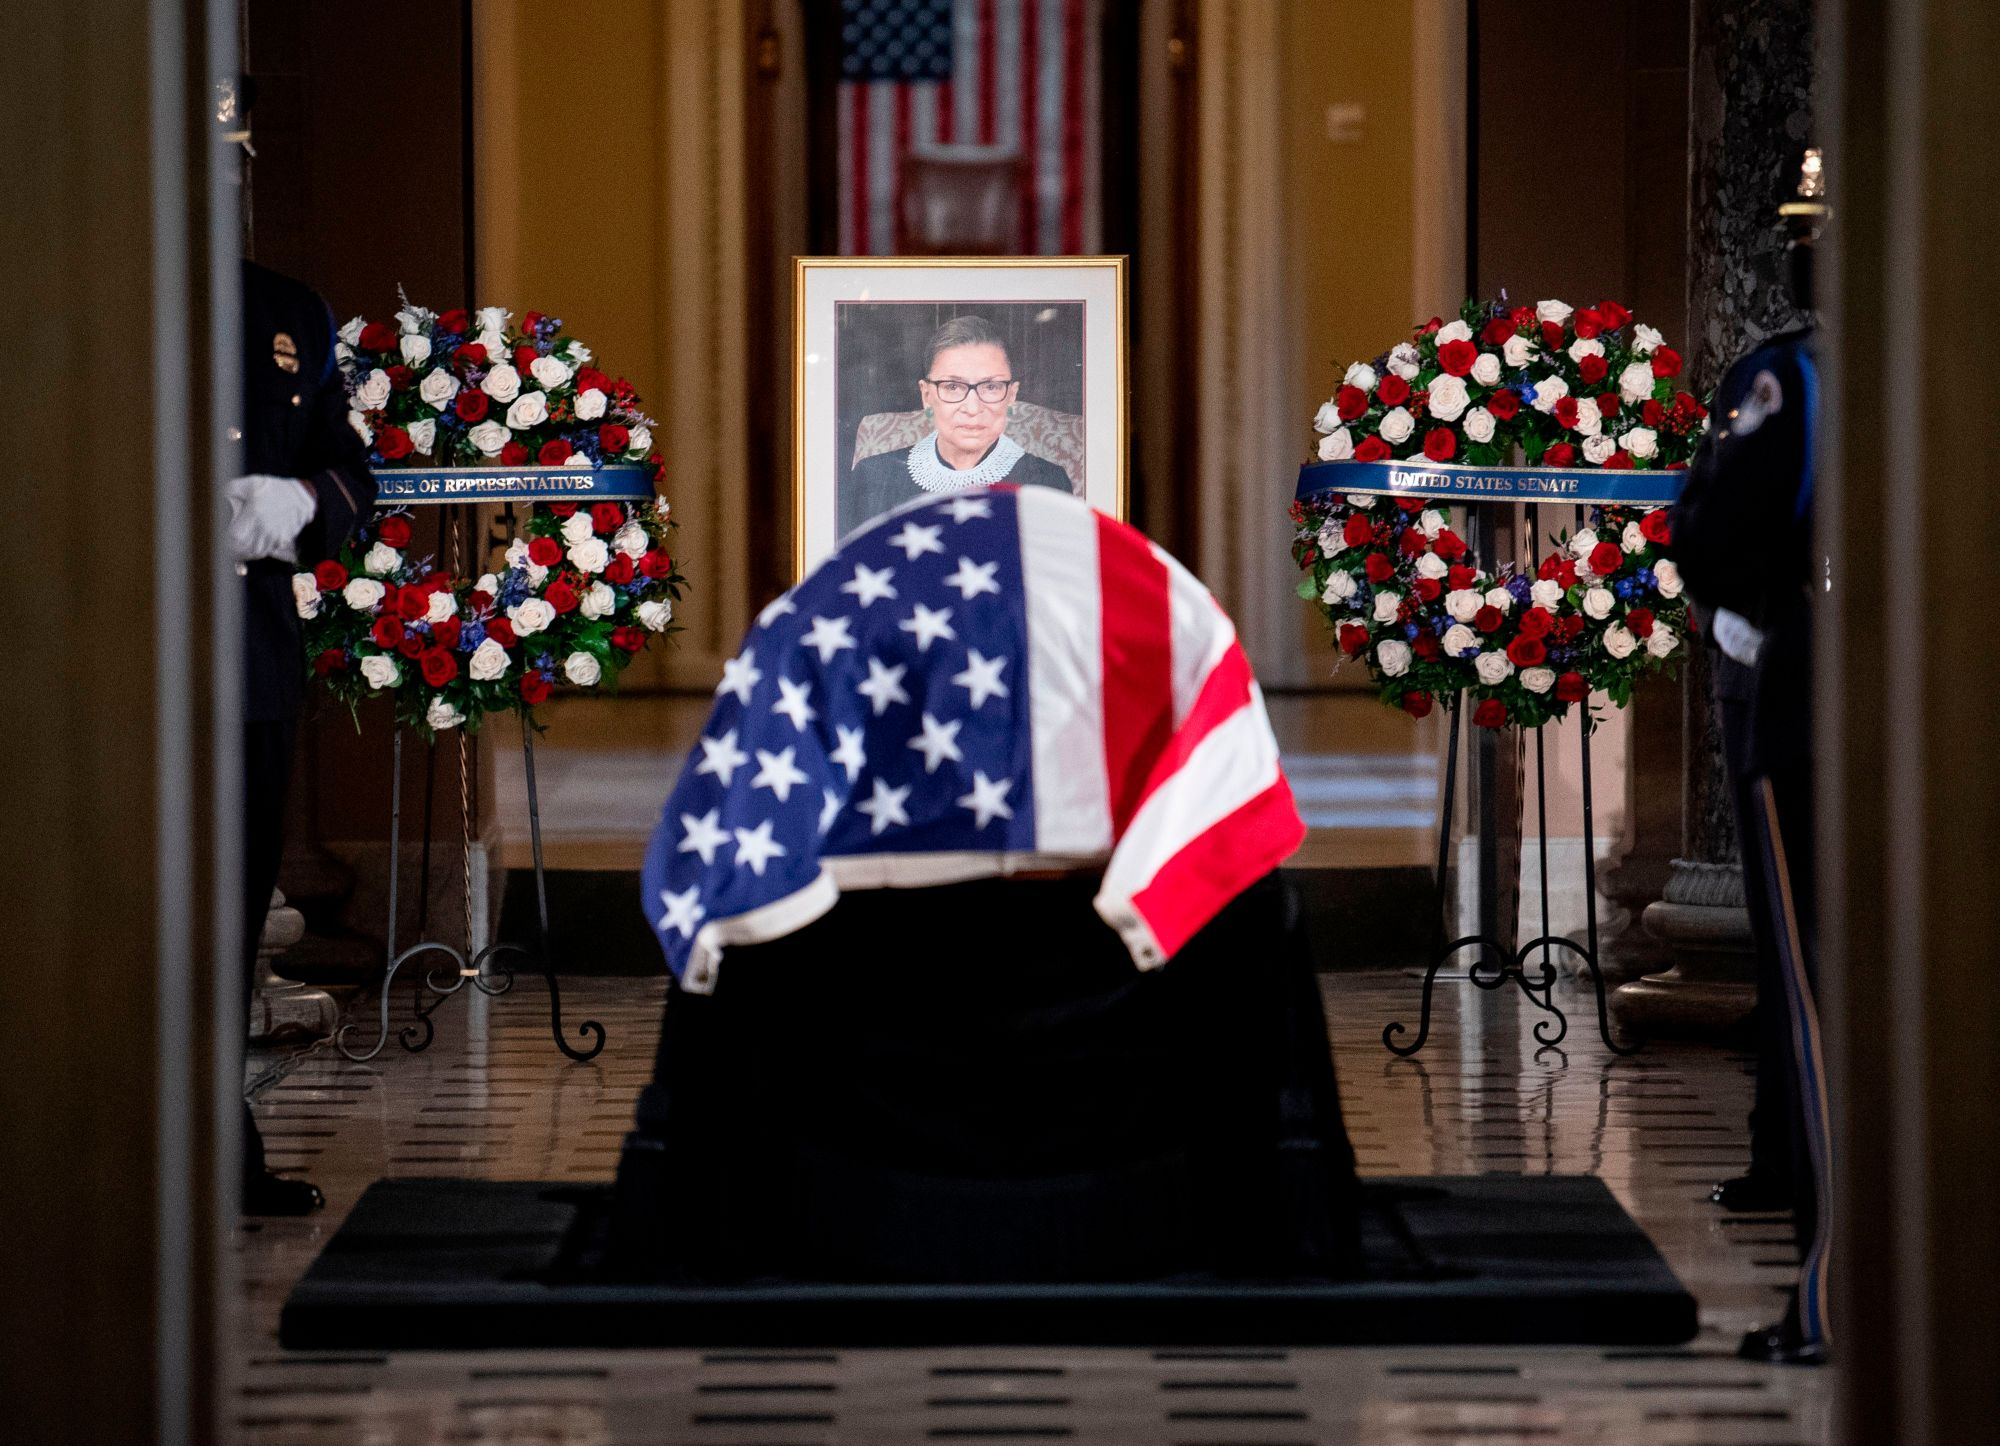 The remains of US Supreme Court Justice Ruth Bader Ginsburg lie in state at the US Capitol in Washington, DC, on September 25, 2020. (CAROLINE BREHMAN/POOL/AFP via Getty Images)